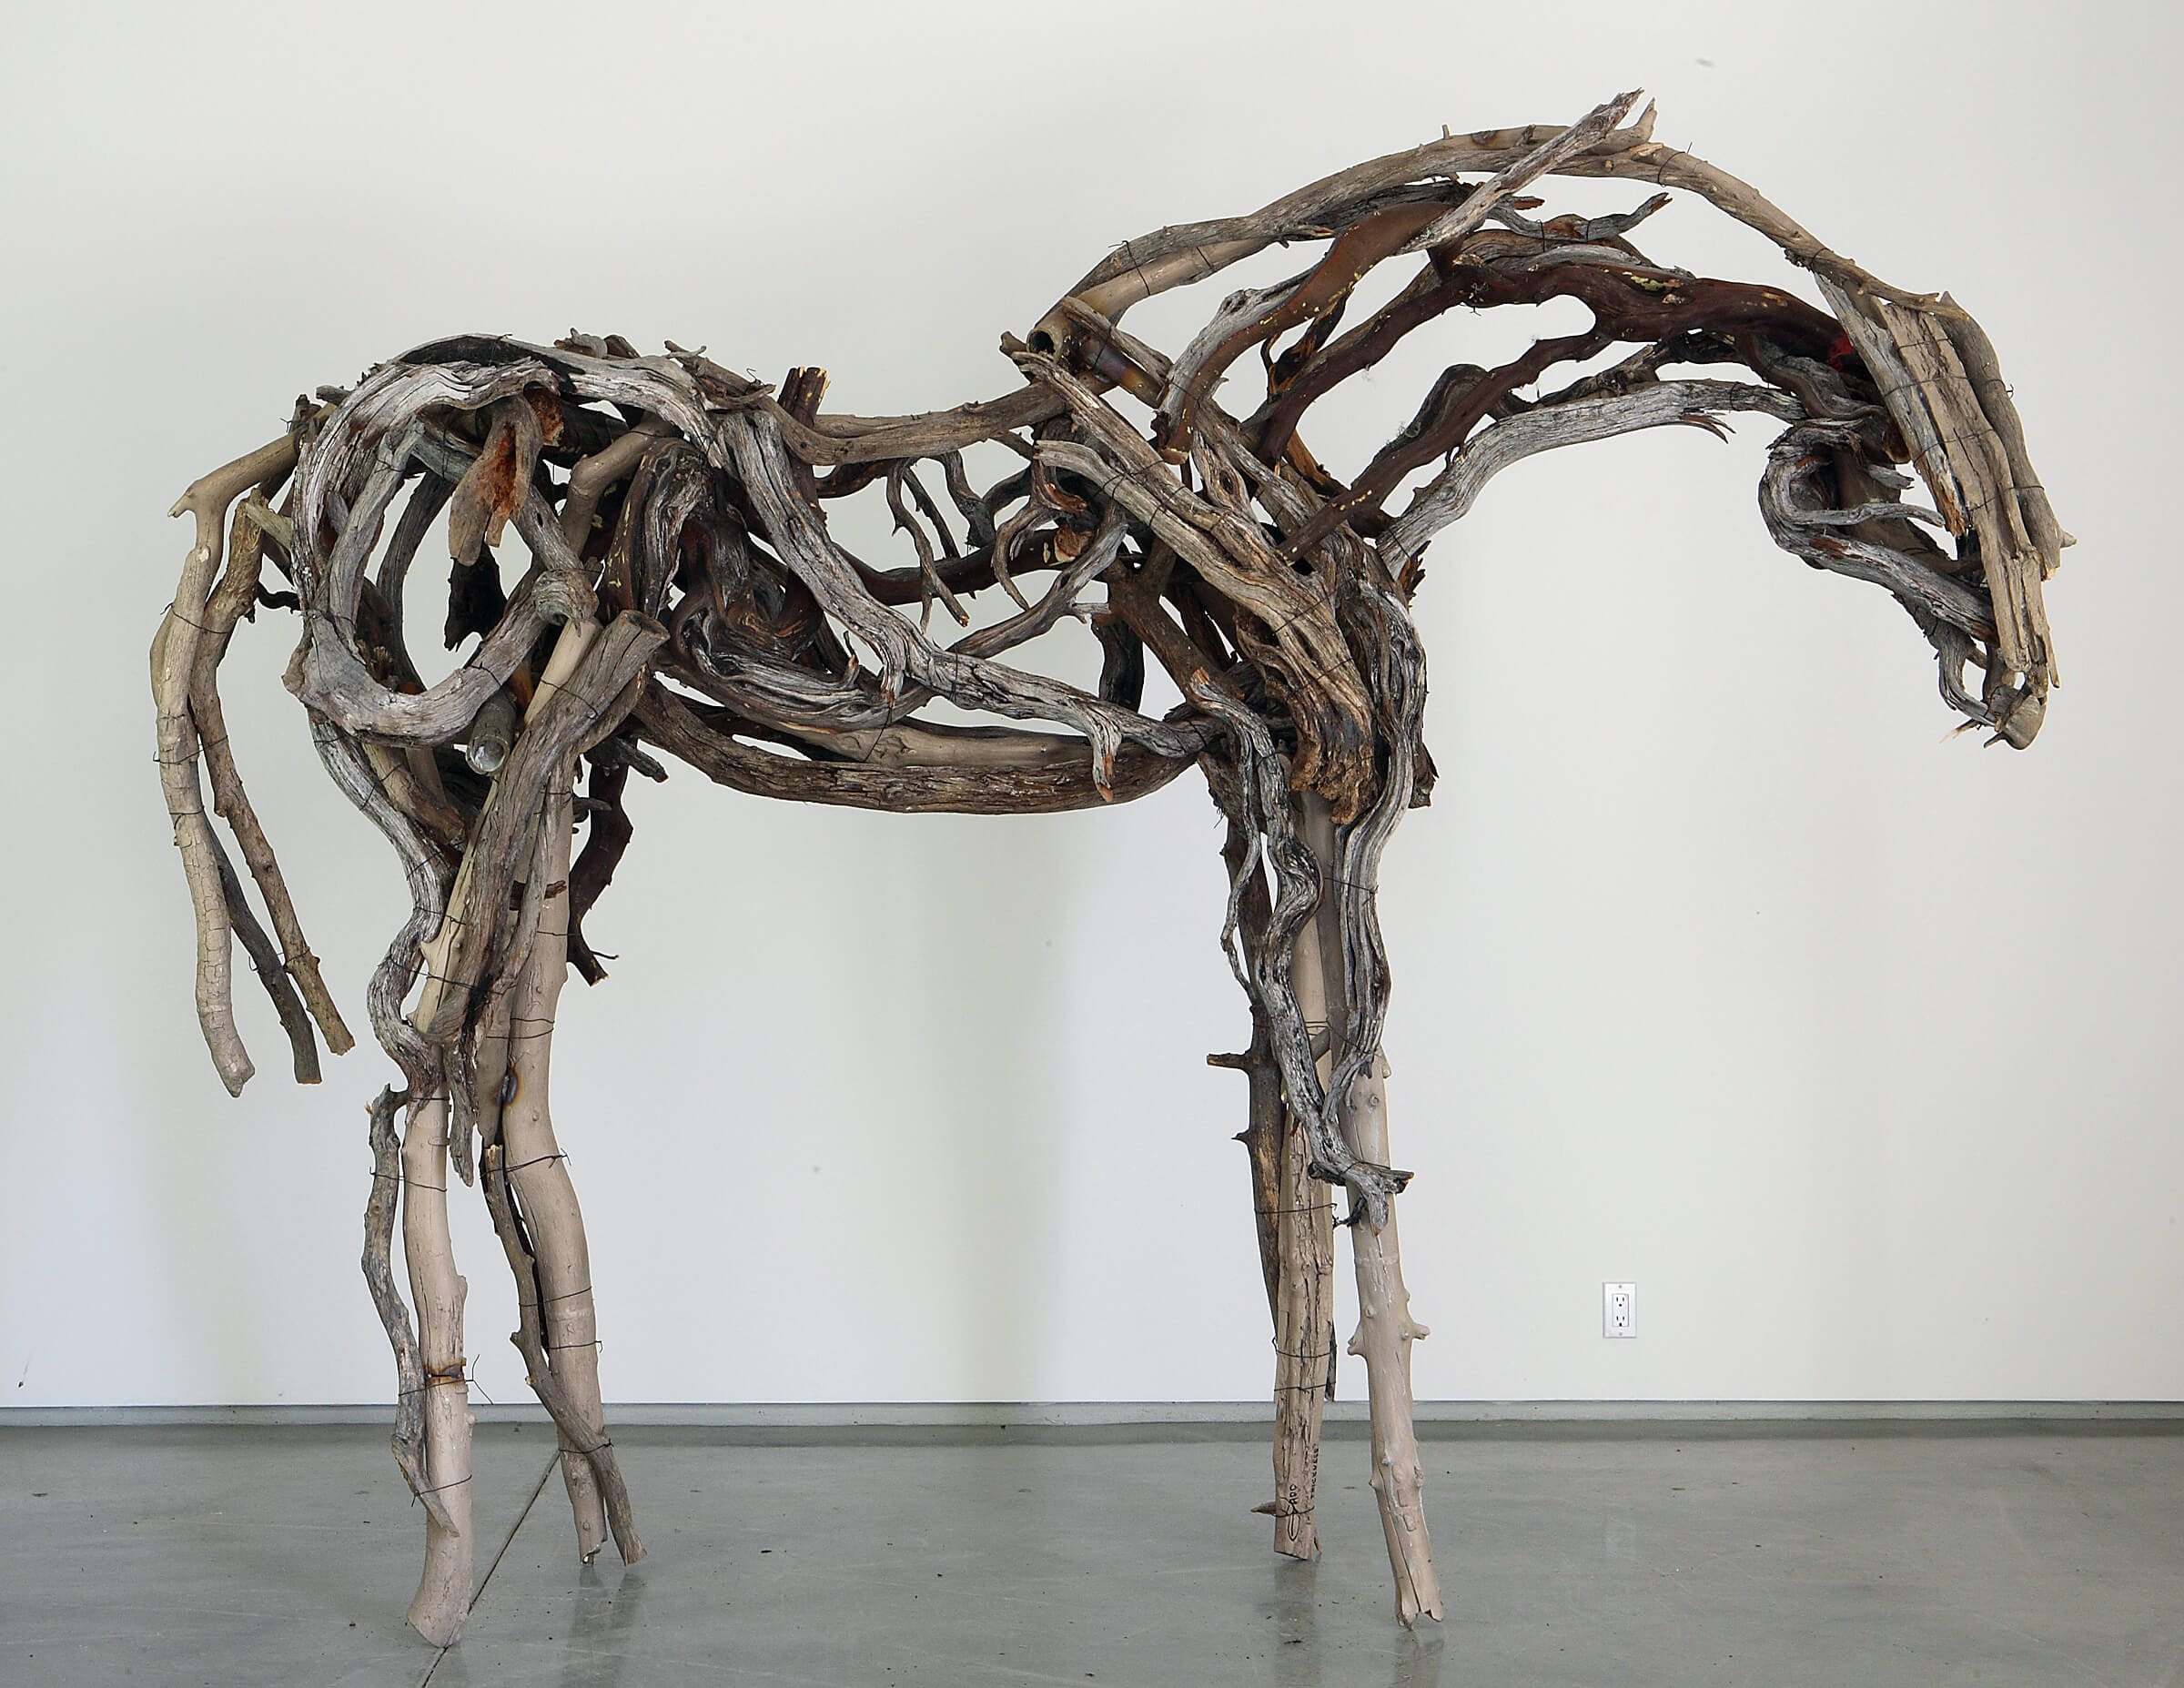 Deborah Butterfield Bronze Horse Sculpture To Be Installed